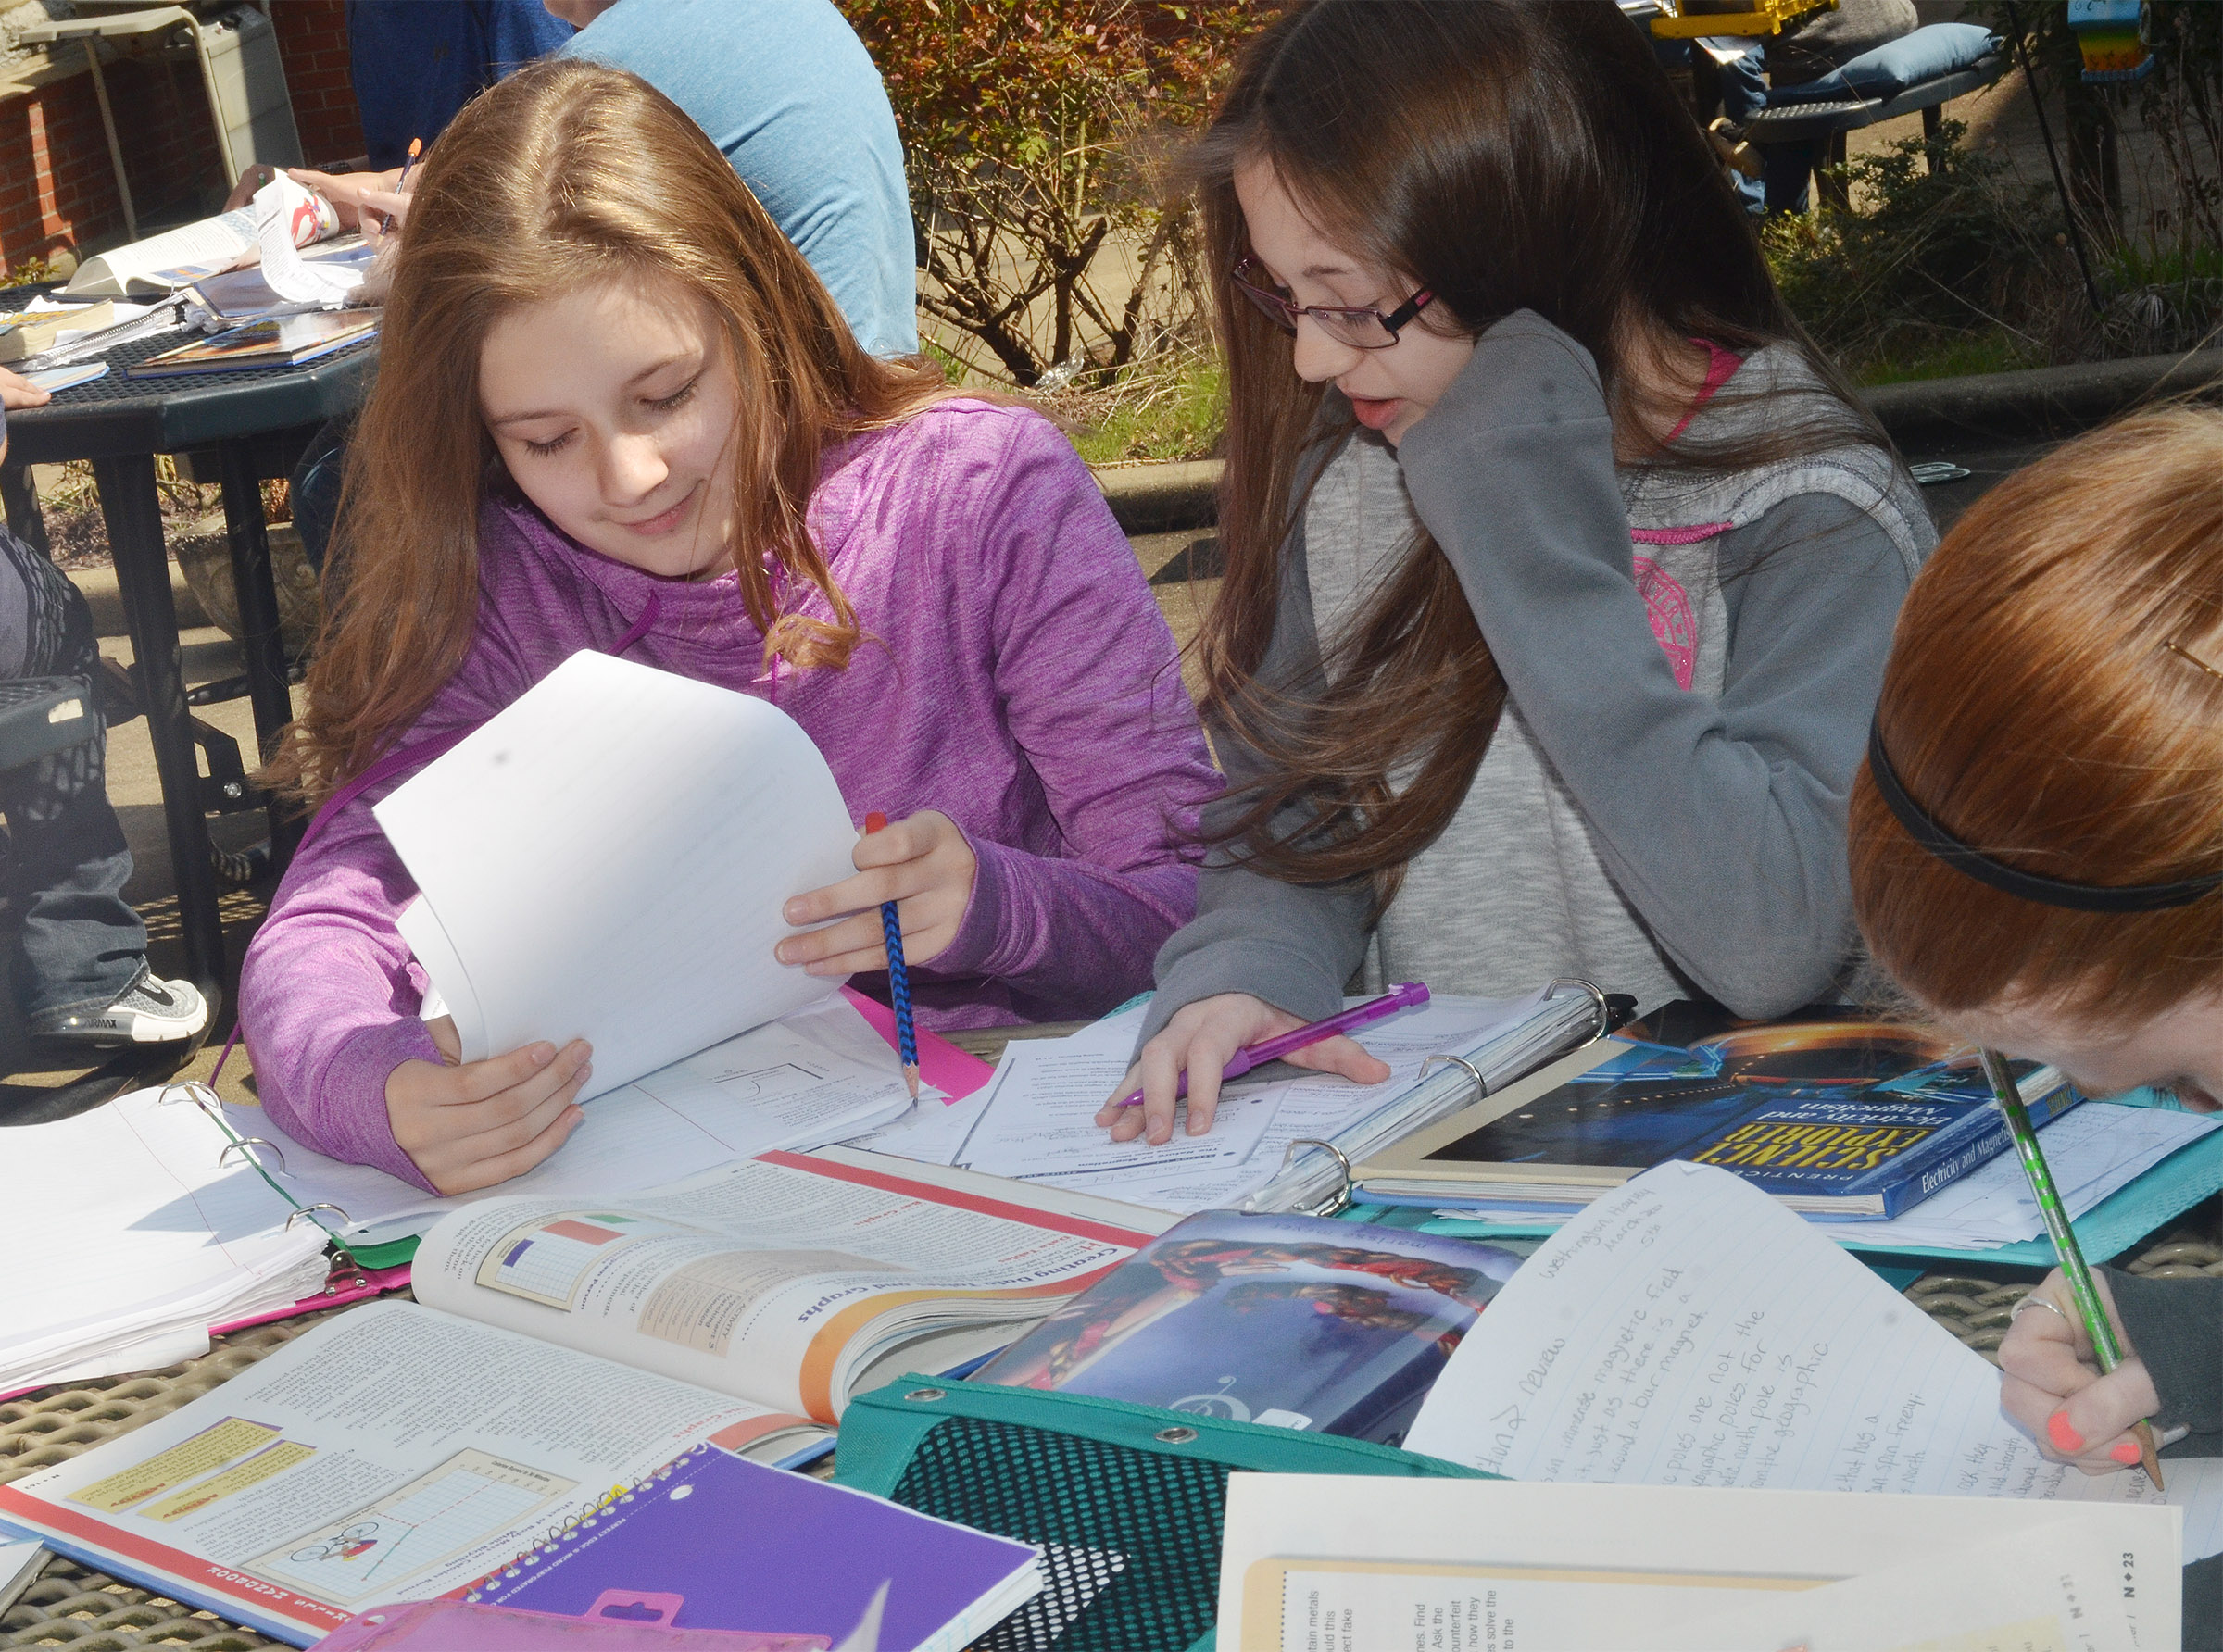 CMS seventh-graders Serenity Ford, at left, and Cailet Clark study together.